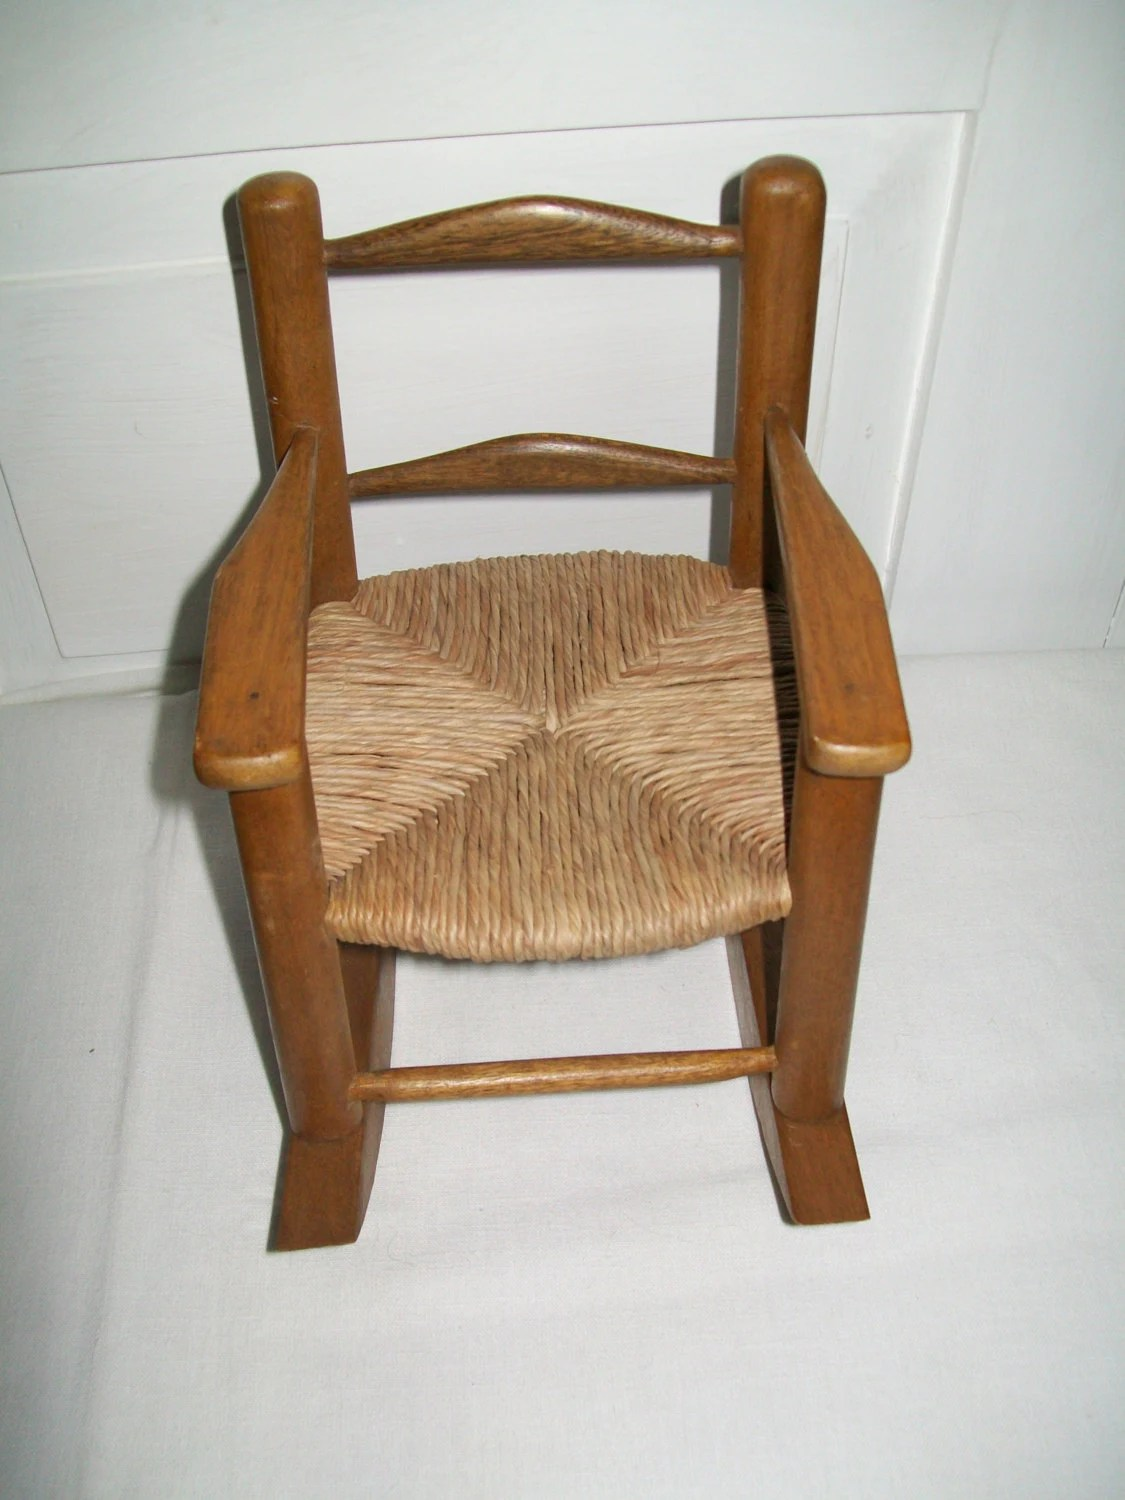 mini rocking chair gothic chairs vintage miniature wooden doll with woven seat